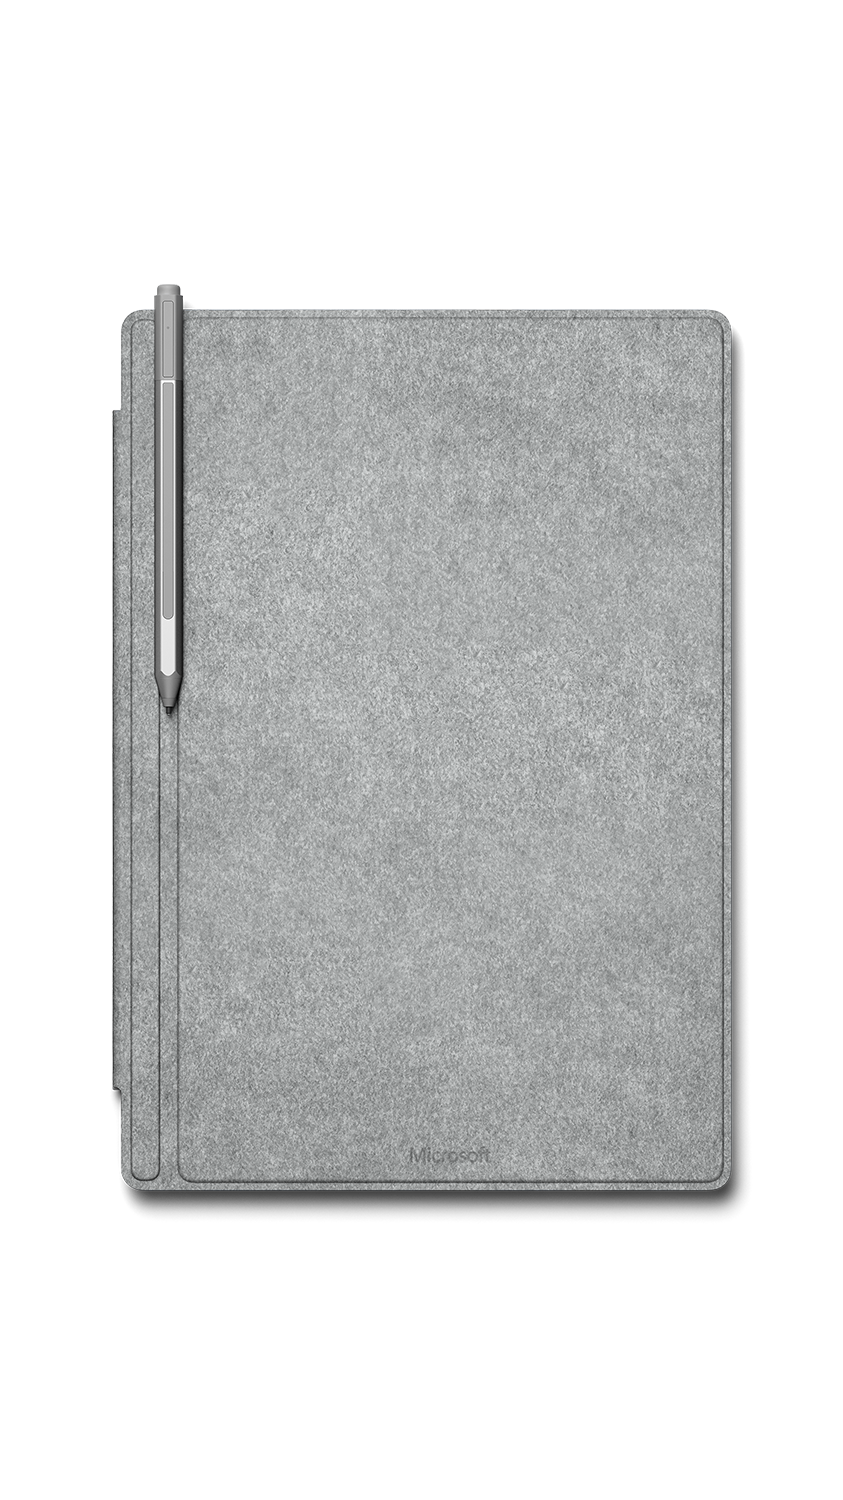 Surface_Pro_4_Type_Cover_03_GRY